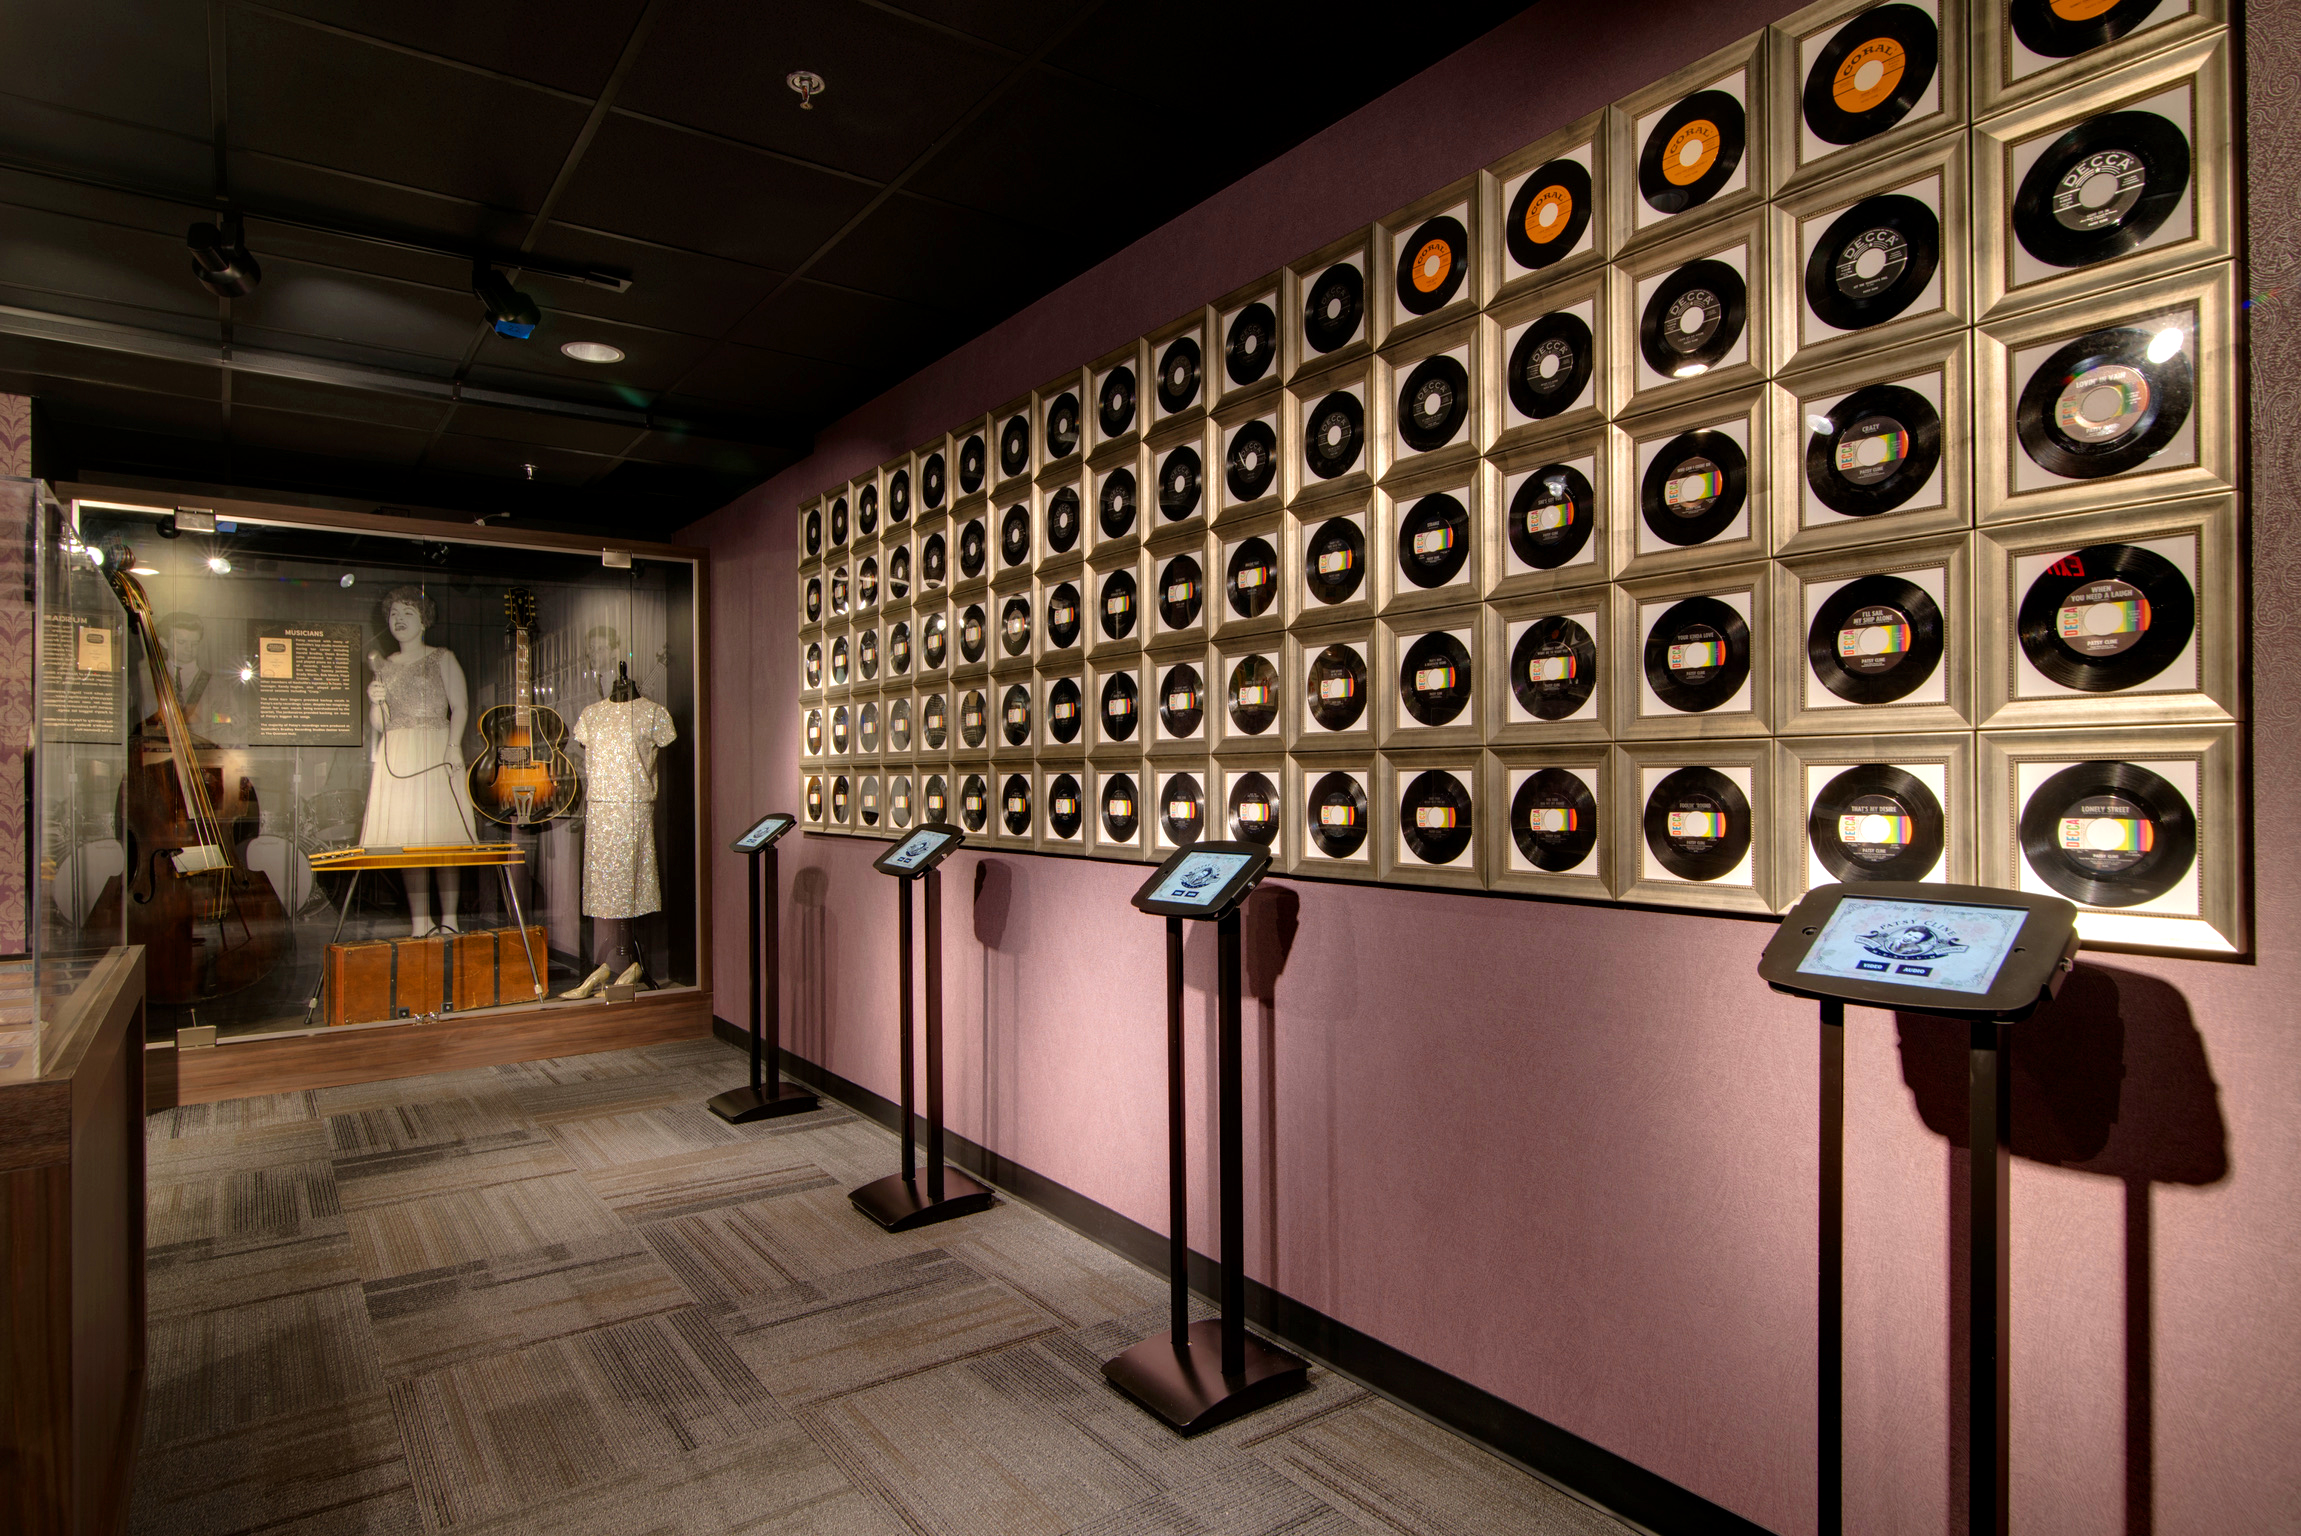 Patsy Cline Museum Records Exhibit